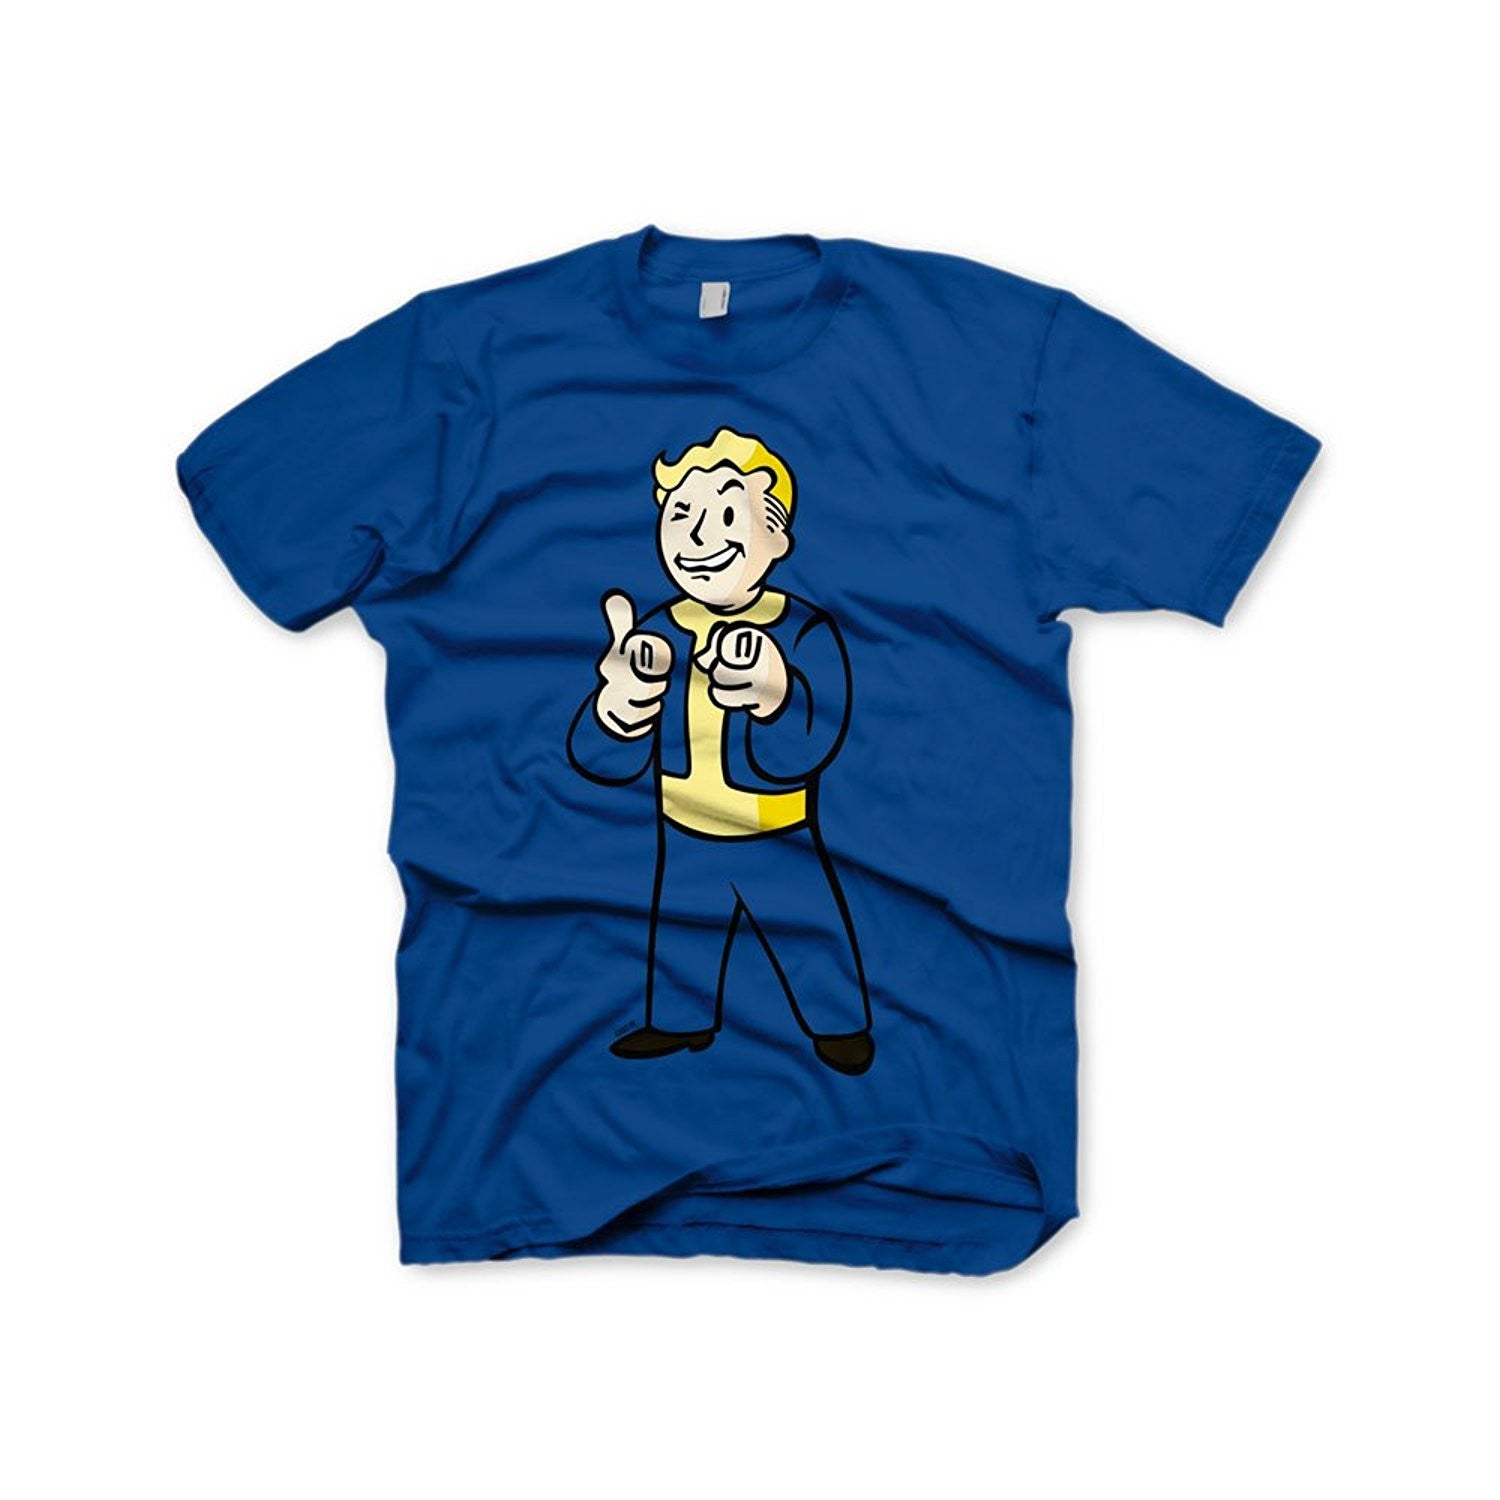 Fallout - Charisma T-Shirt - Apparel by Bethesda The Chelsea Gamer